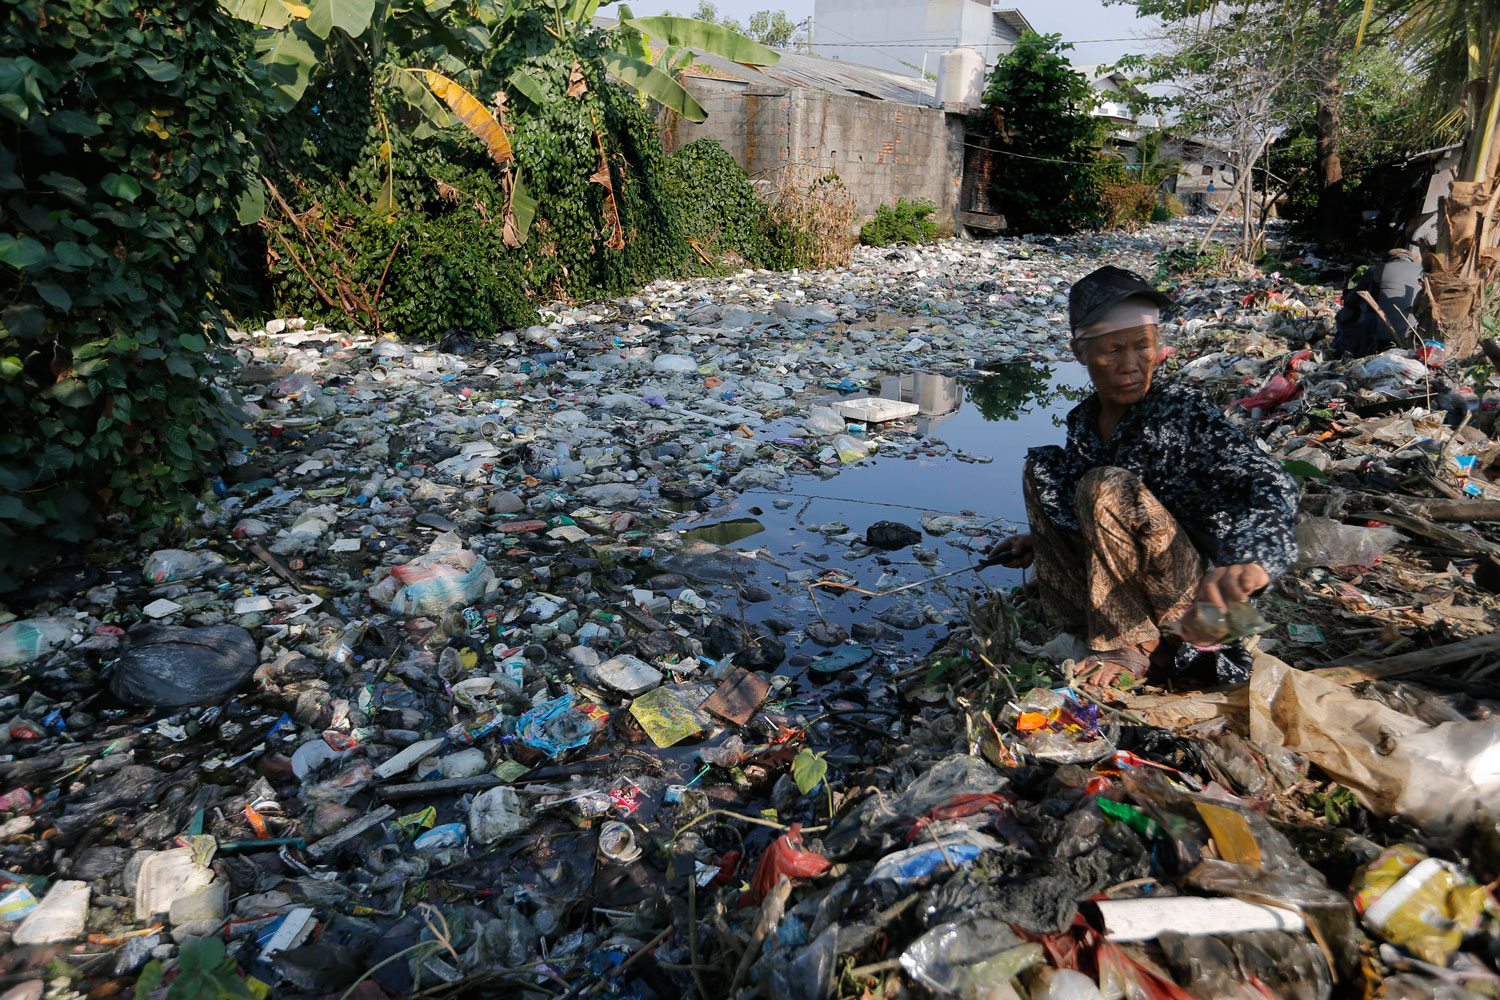 A scavenger collects plastic materials to be sold to recycling plants on the Bahagia river in Bekasi, Indonesia, Aug. 1, 2019.